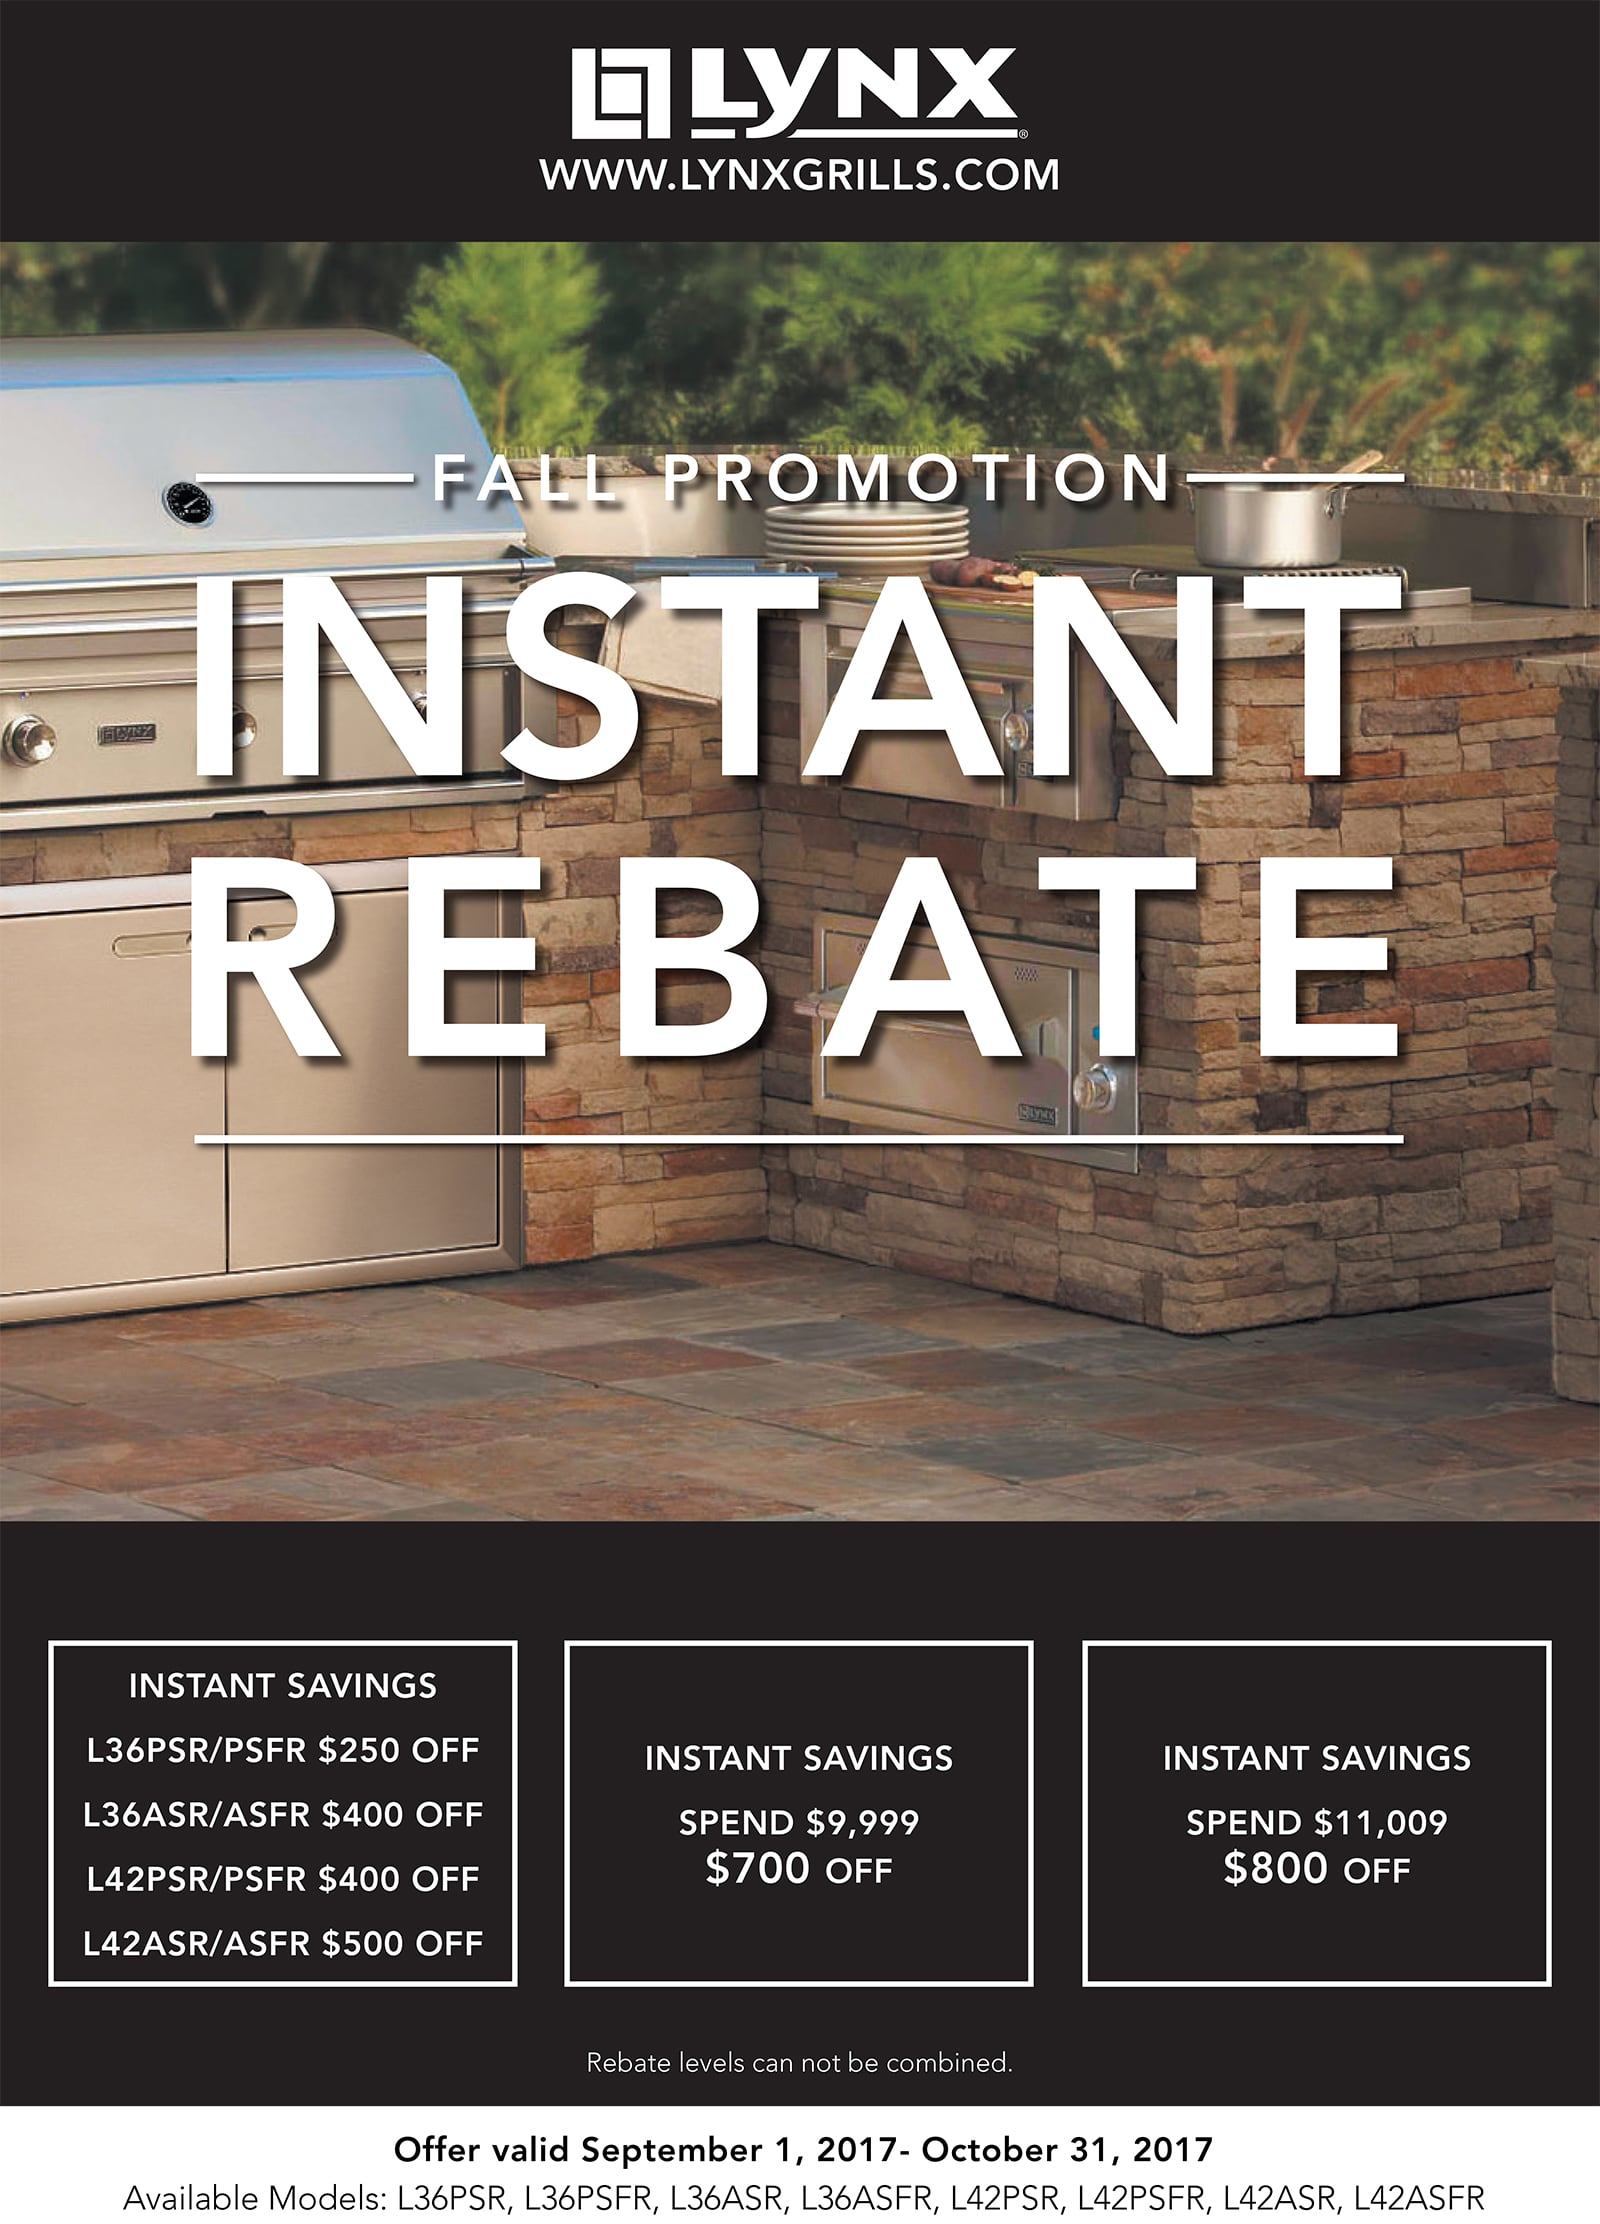 Sedona by Lynx Fall Promotion - Instant Rebate